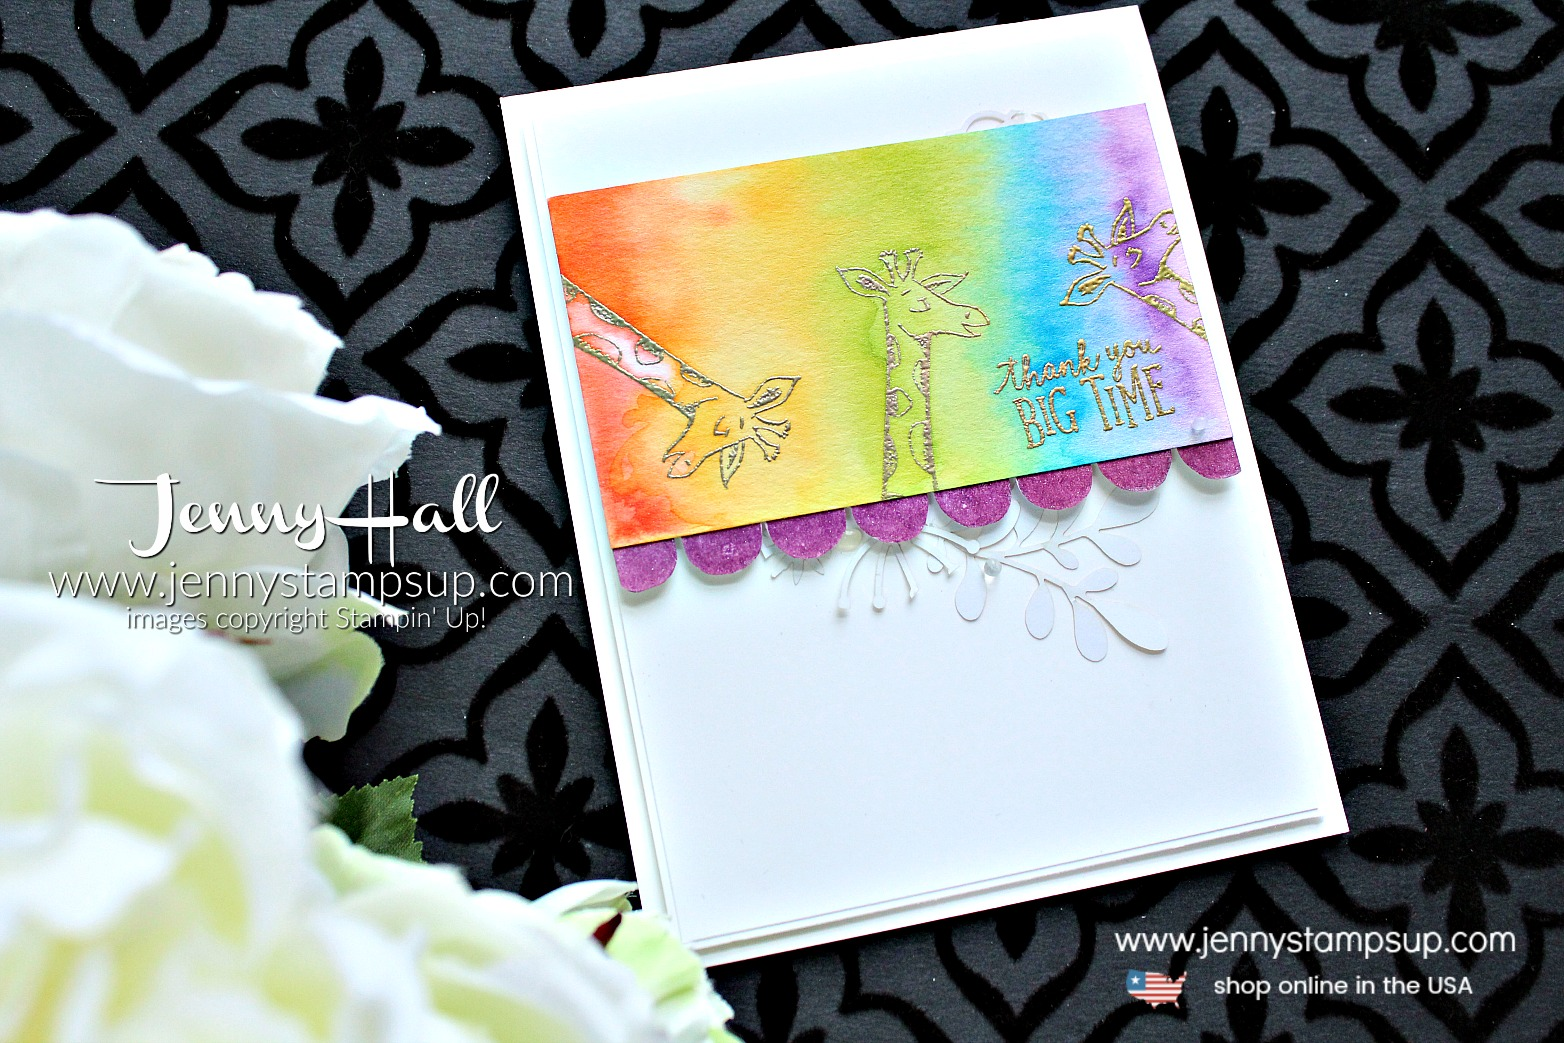 Animal Outing rainbow watercolor card with Video created by Jenny Hall at www.jennystampsup.com for #cardmaking #stamping #watercolorpainting #watercolor #rainbow #paintarainbow #giraffe #animalouting #jennyhall #jennyhalldesigns #jennystampsup #stampinup #youtuber #videotutorial #facebooklivereplay #crafts #diy #lifestyle